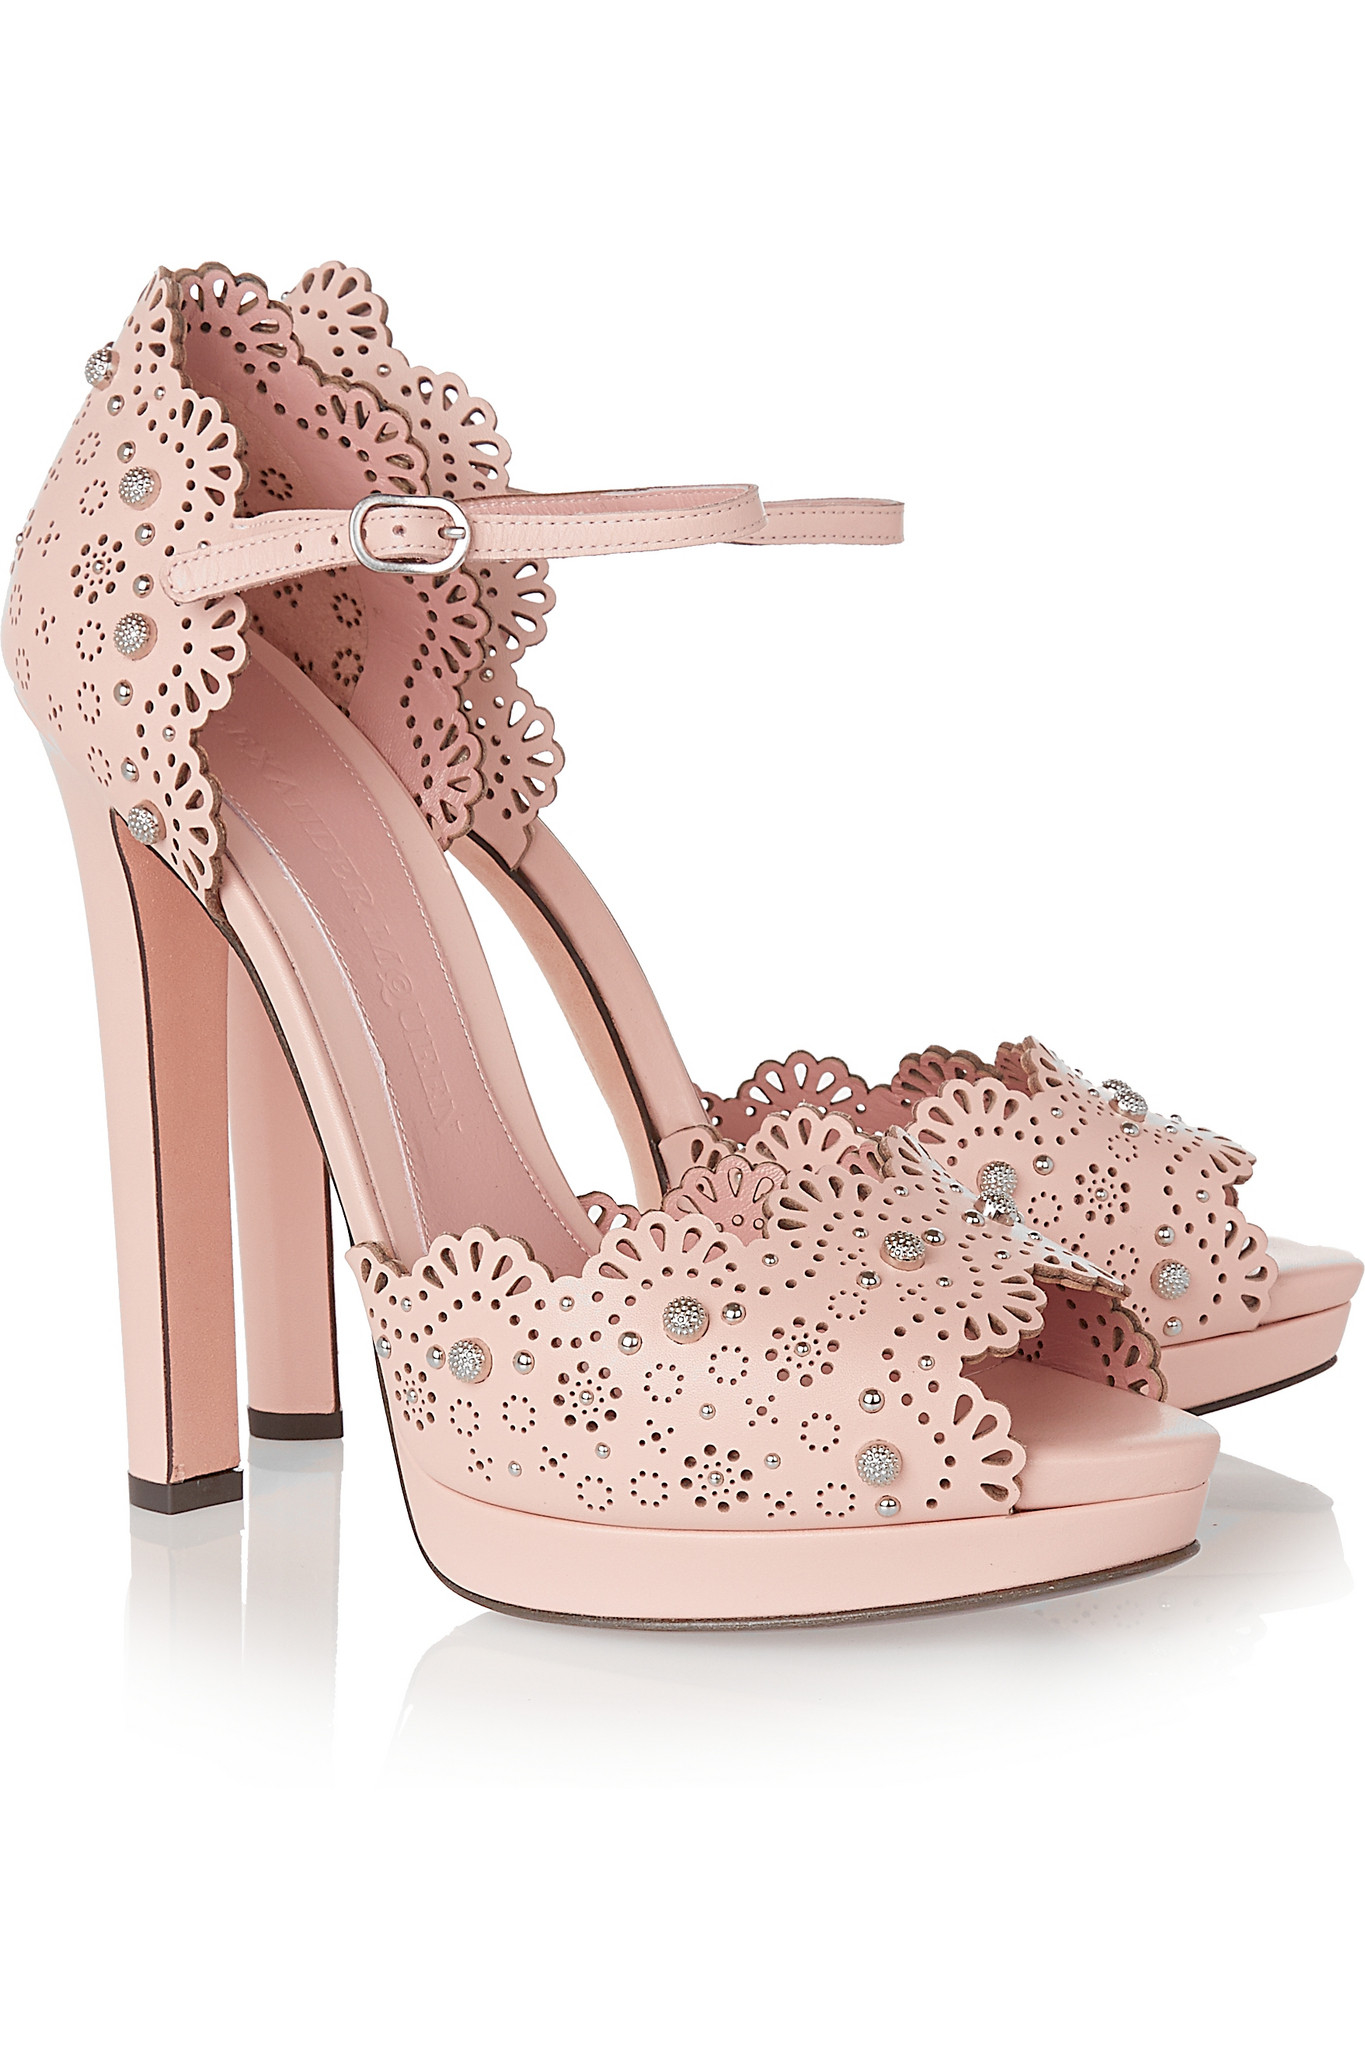 alexander-mcqueen-antique-rose-studded-laser-cut-leather-sandals-pink-product-5-559355067-normal.jpeg